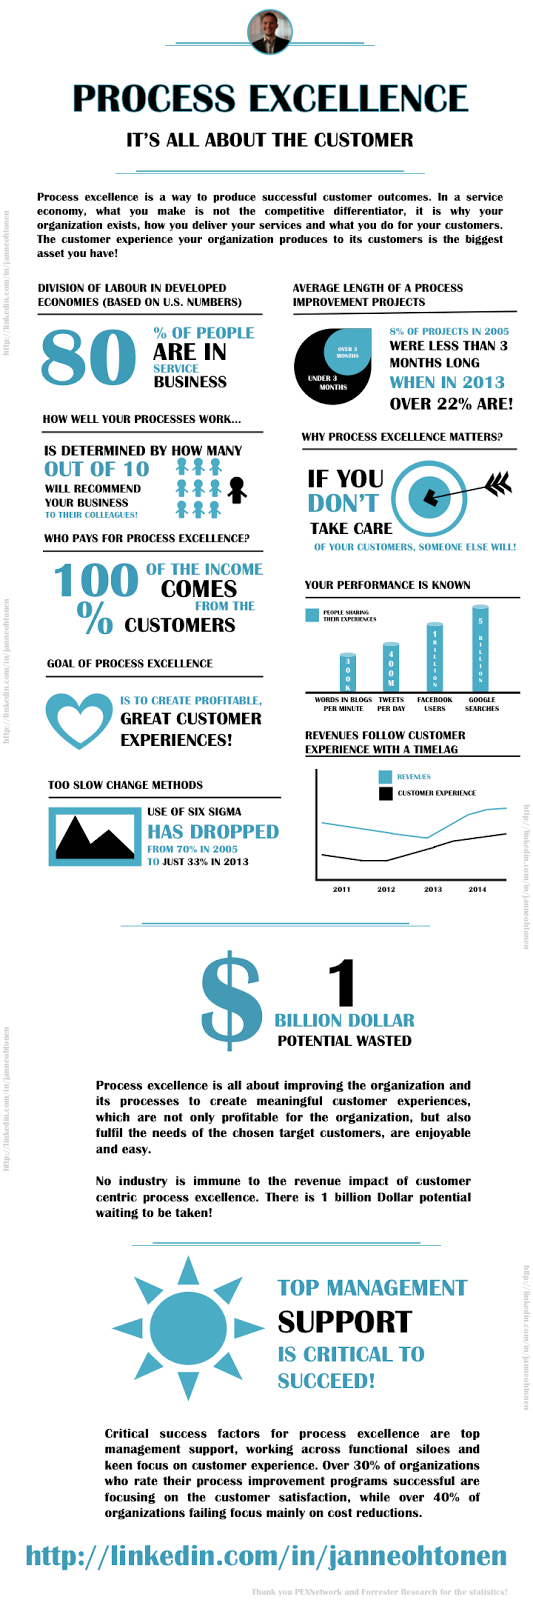 Process Excellence infographics by Janne Ohtonen v1